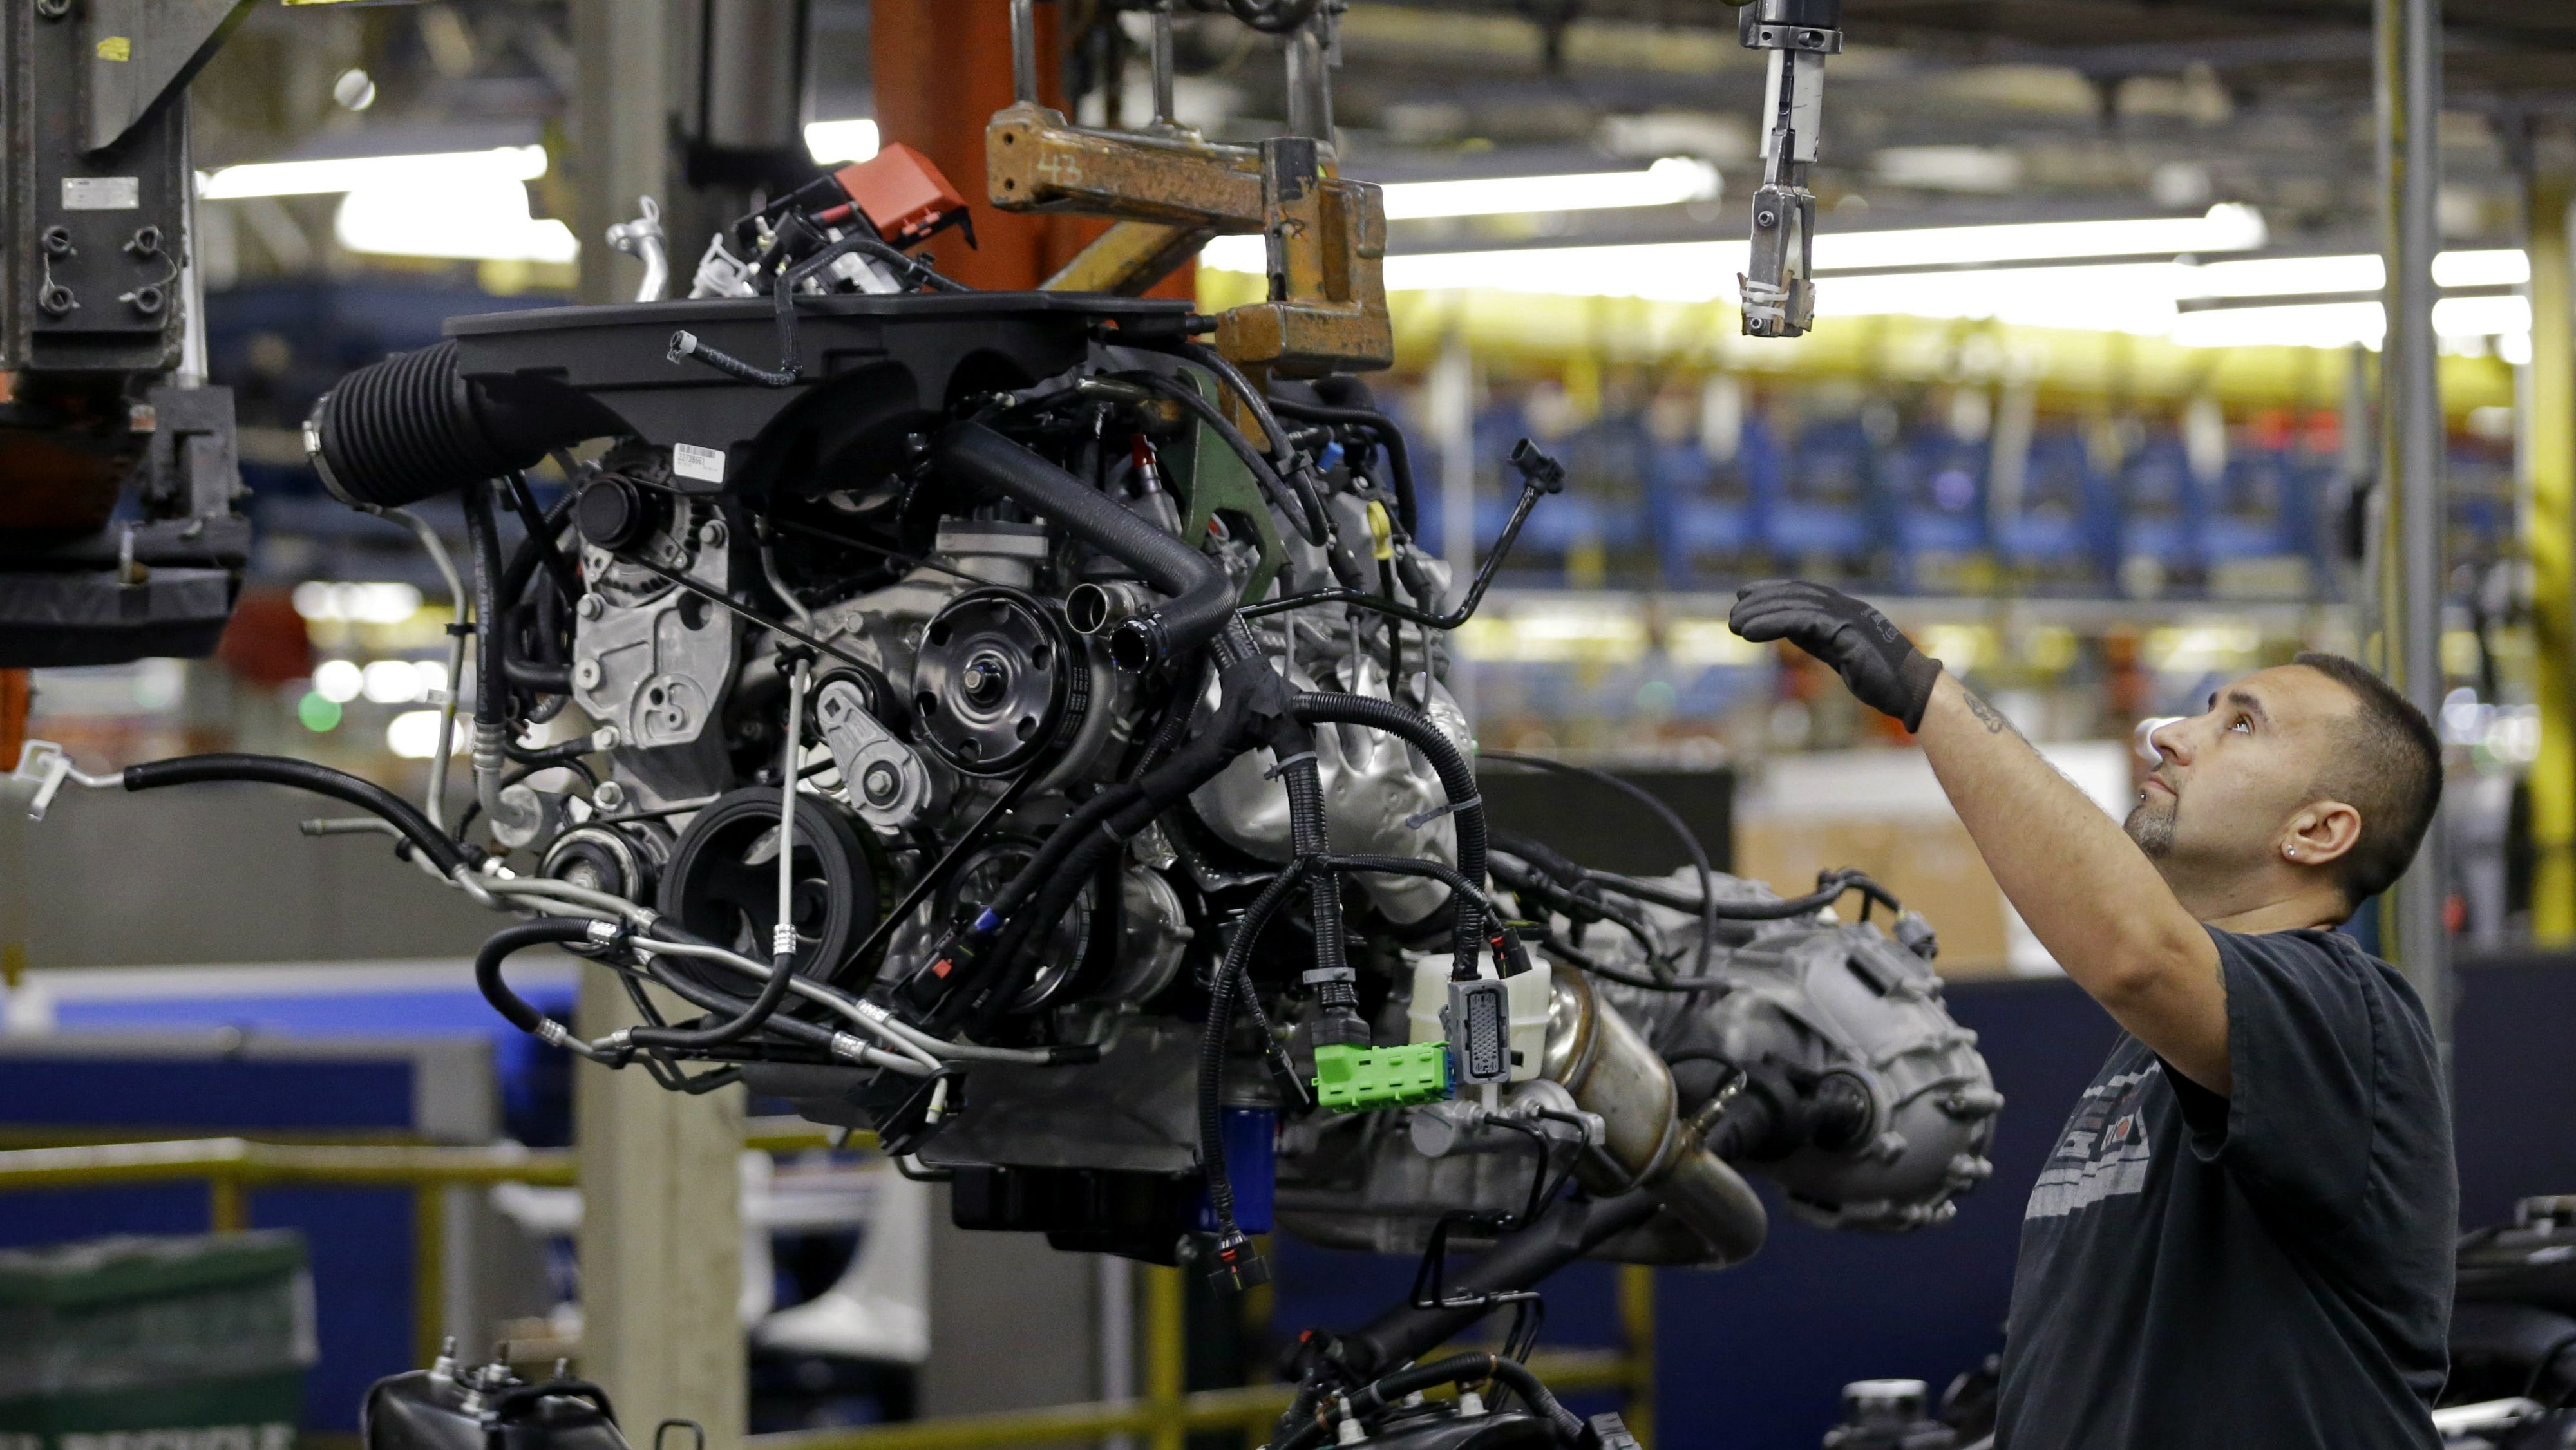 An auto worker assembles an SUV at the General Motors auto plant in Arlington, Texas, Tuesday, May 13, 2014. (AP Photo/LM Otero)